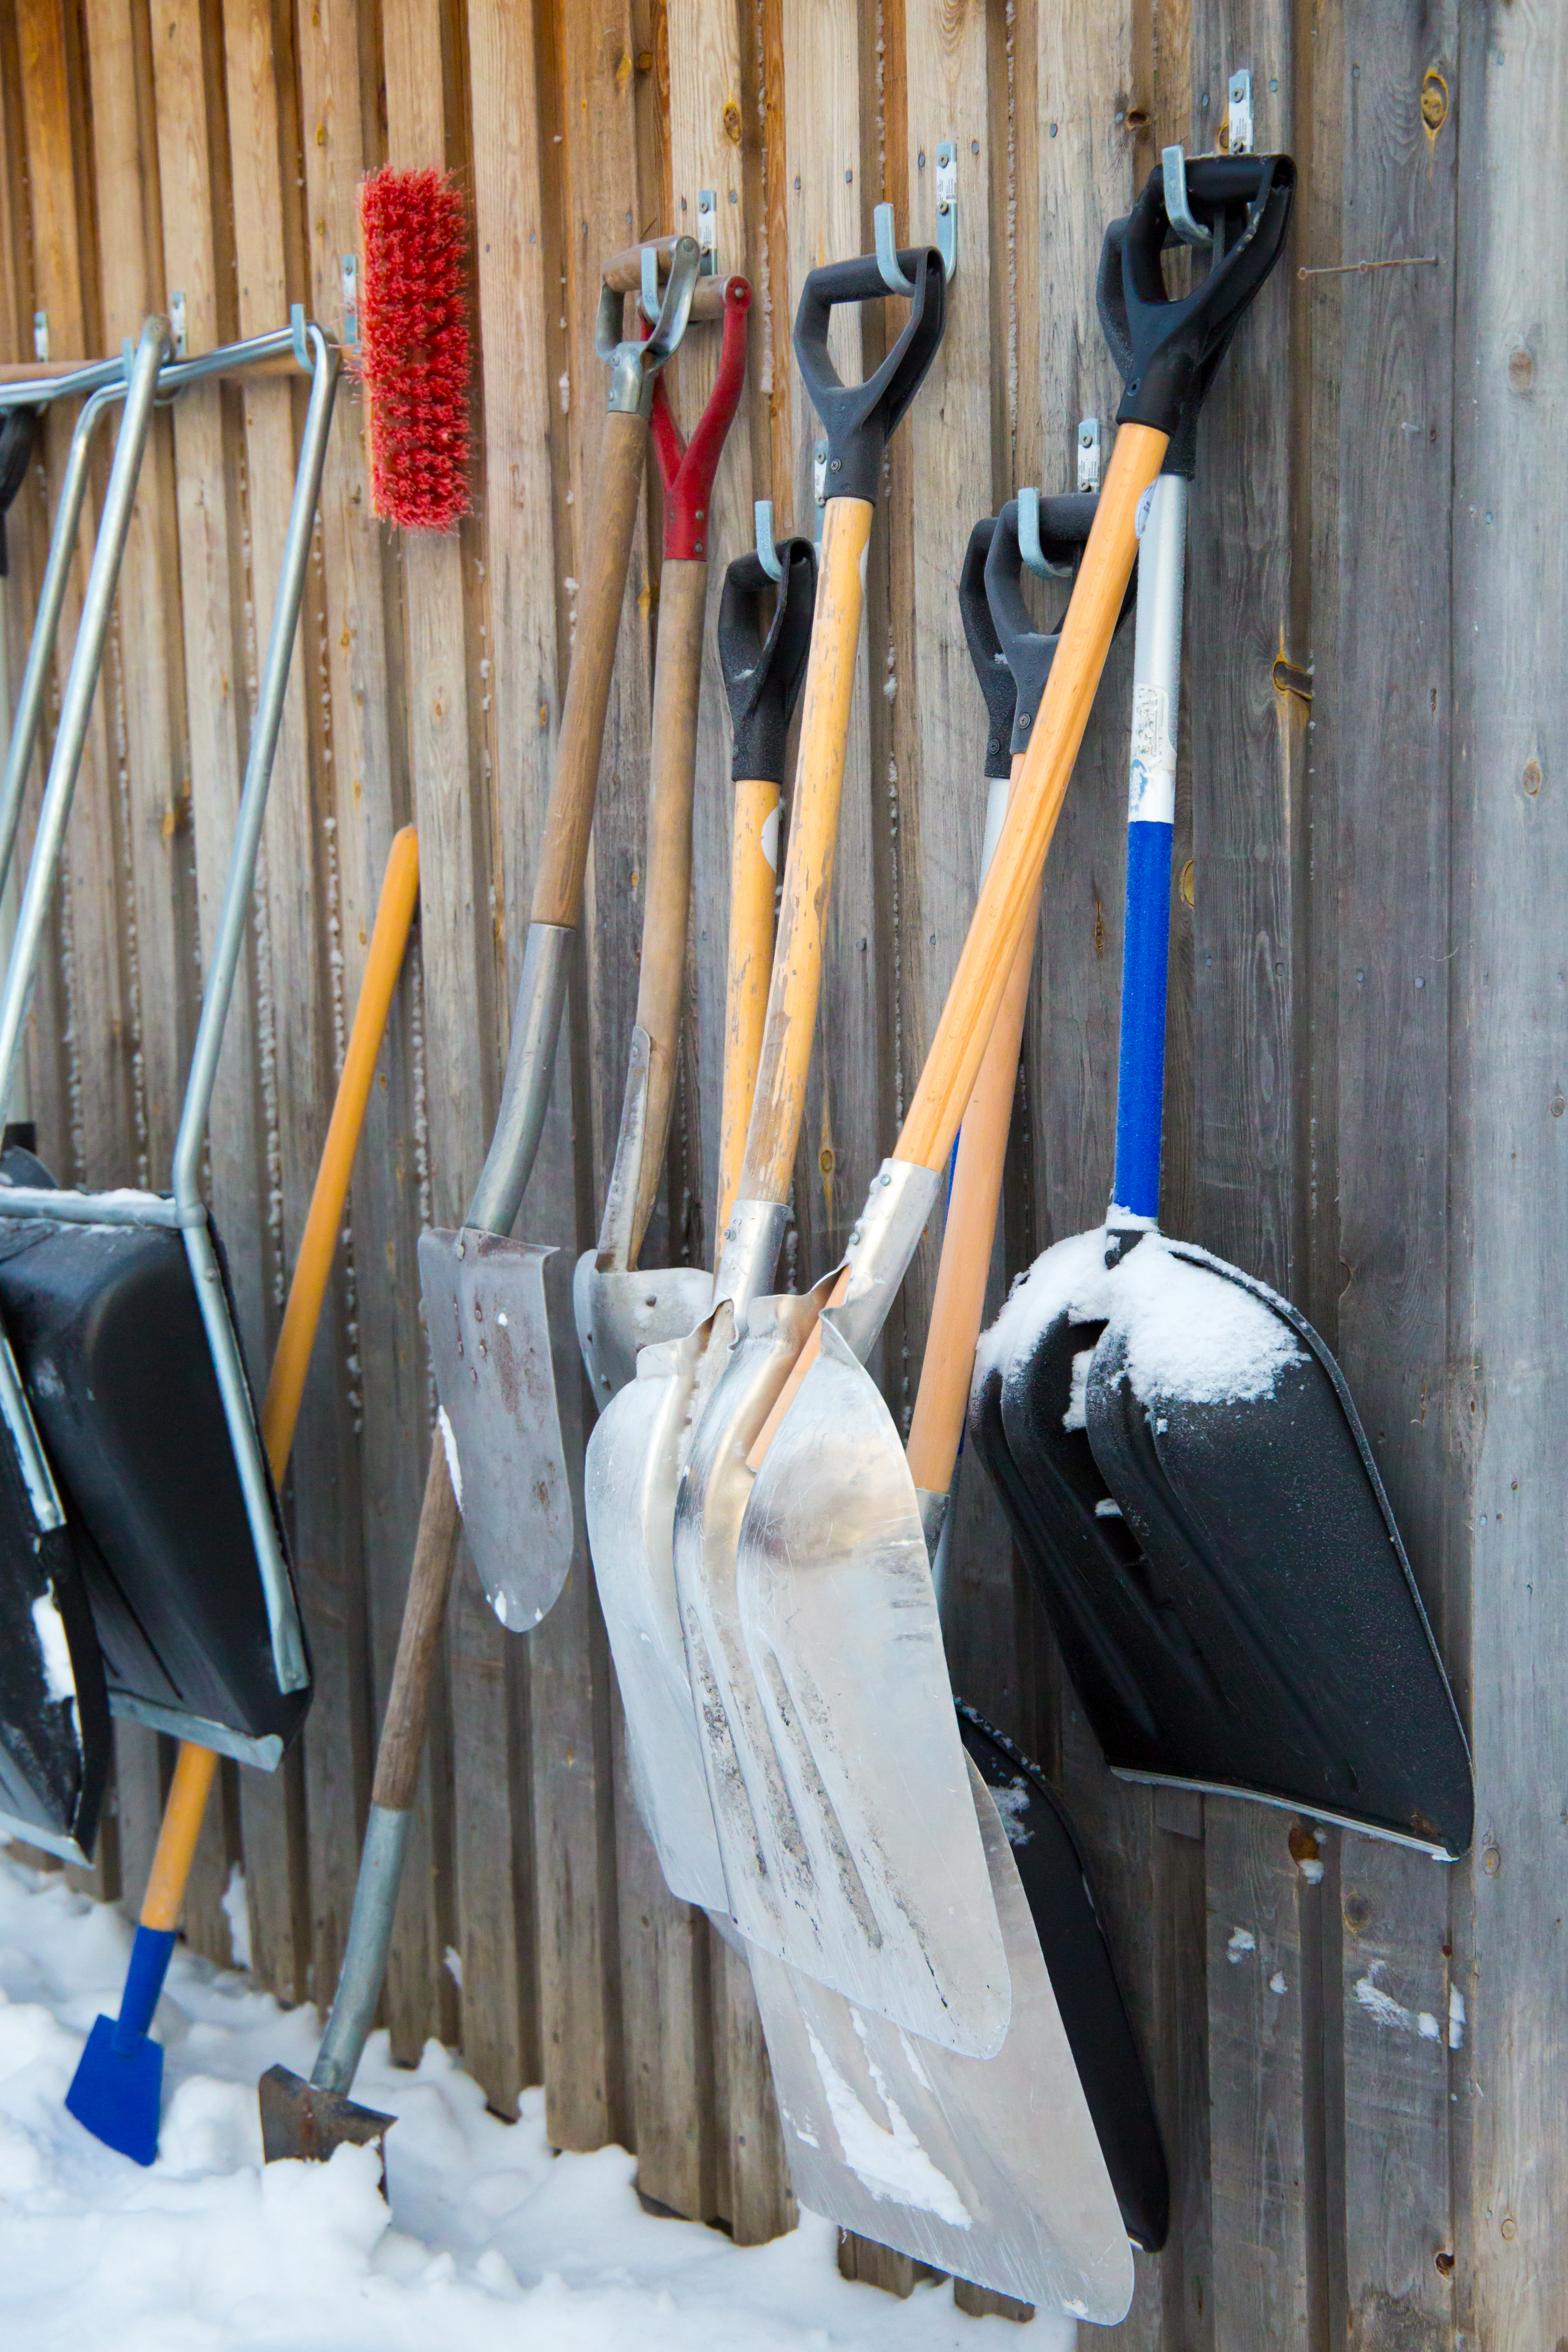 A Homeowner's Guide to Snow Shovels